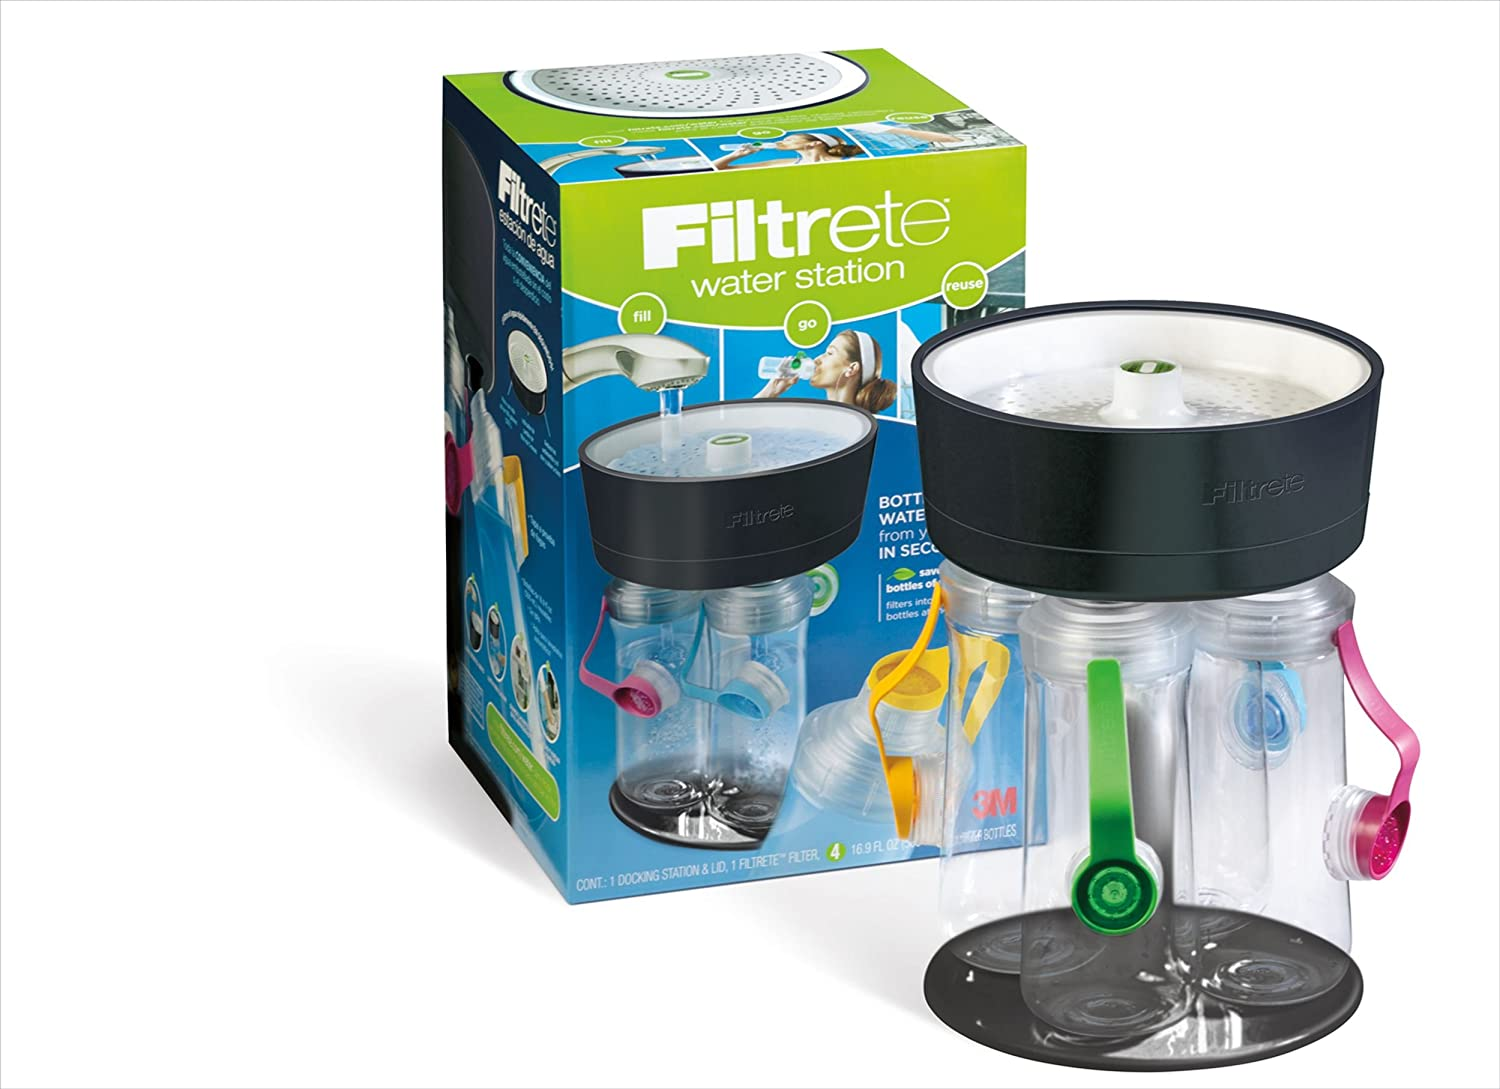 Amazon.com: Filtrete 4-Bottle Water Station with Multicolored Bottle ...